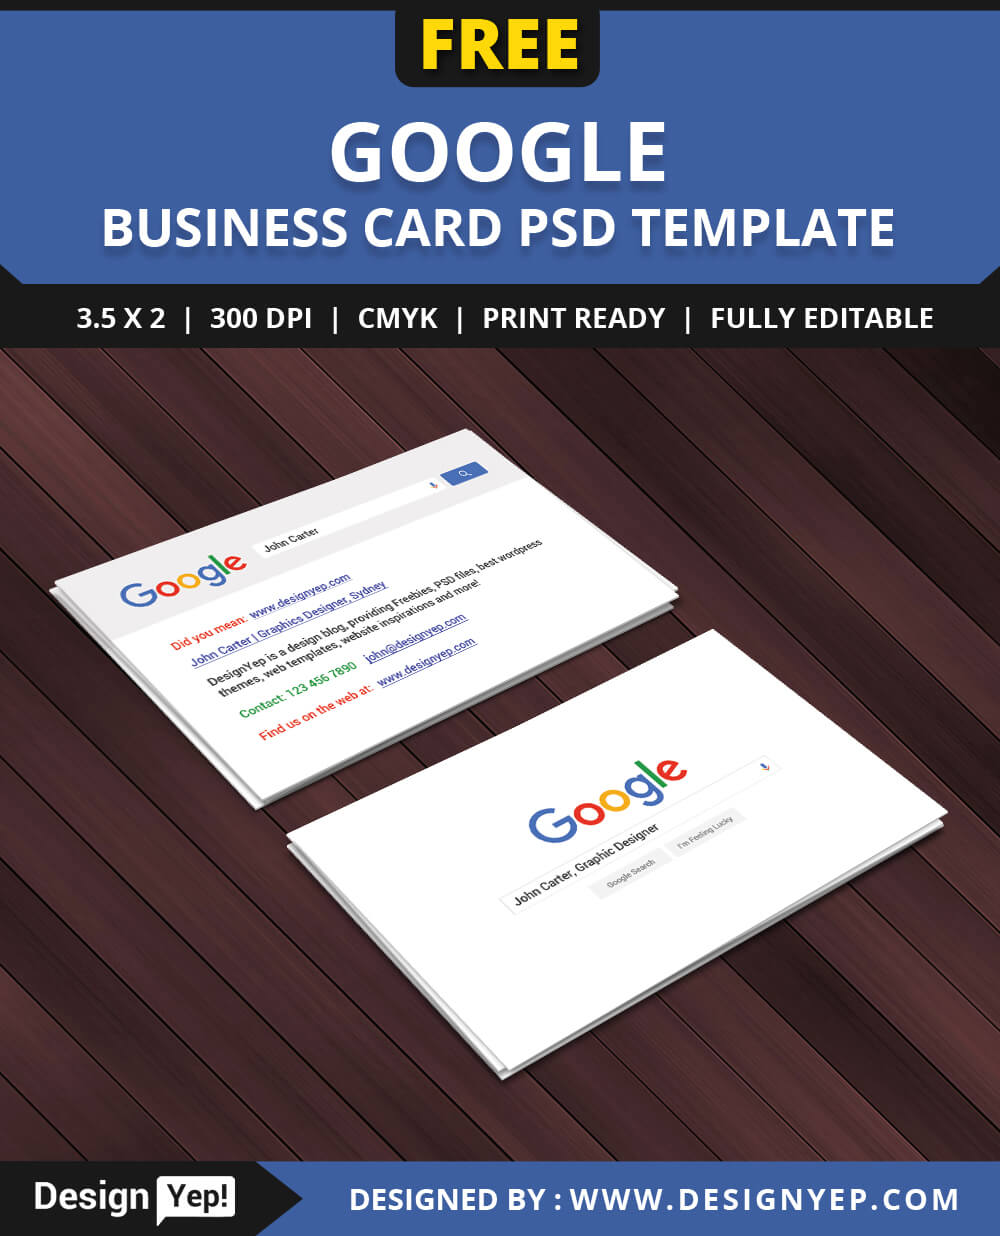 Free Google Interface Business Card Psd Template On Behance For Google Search Business Card Template